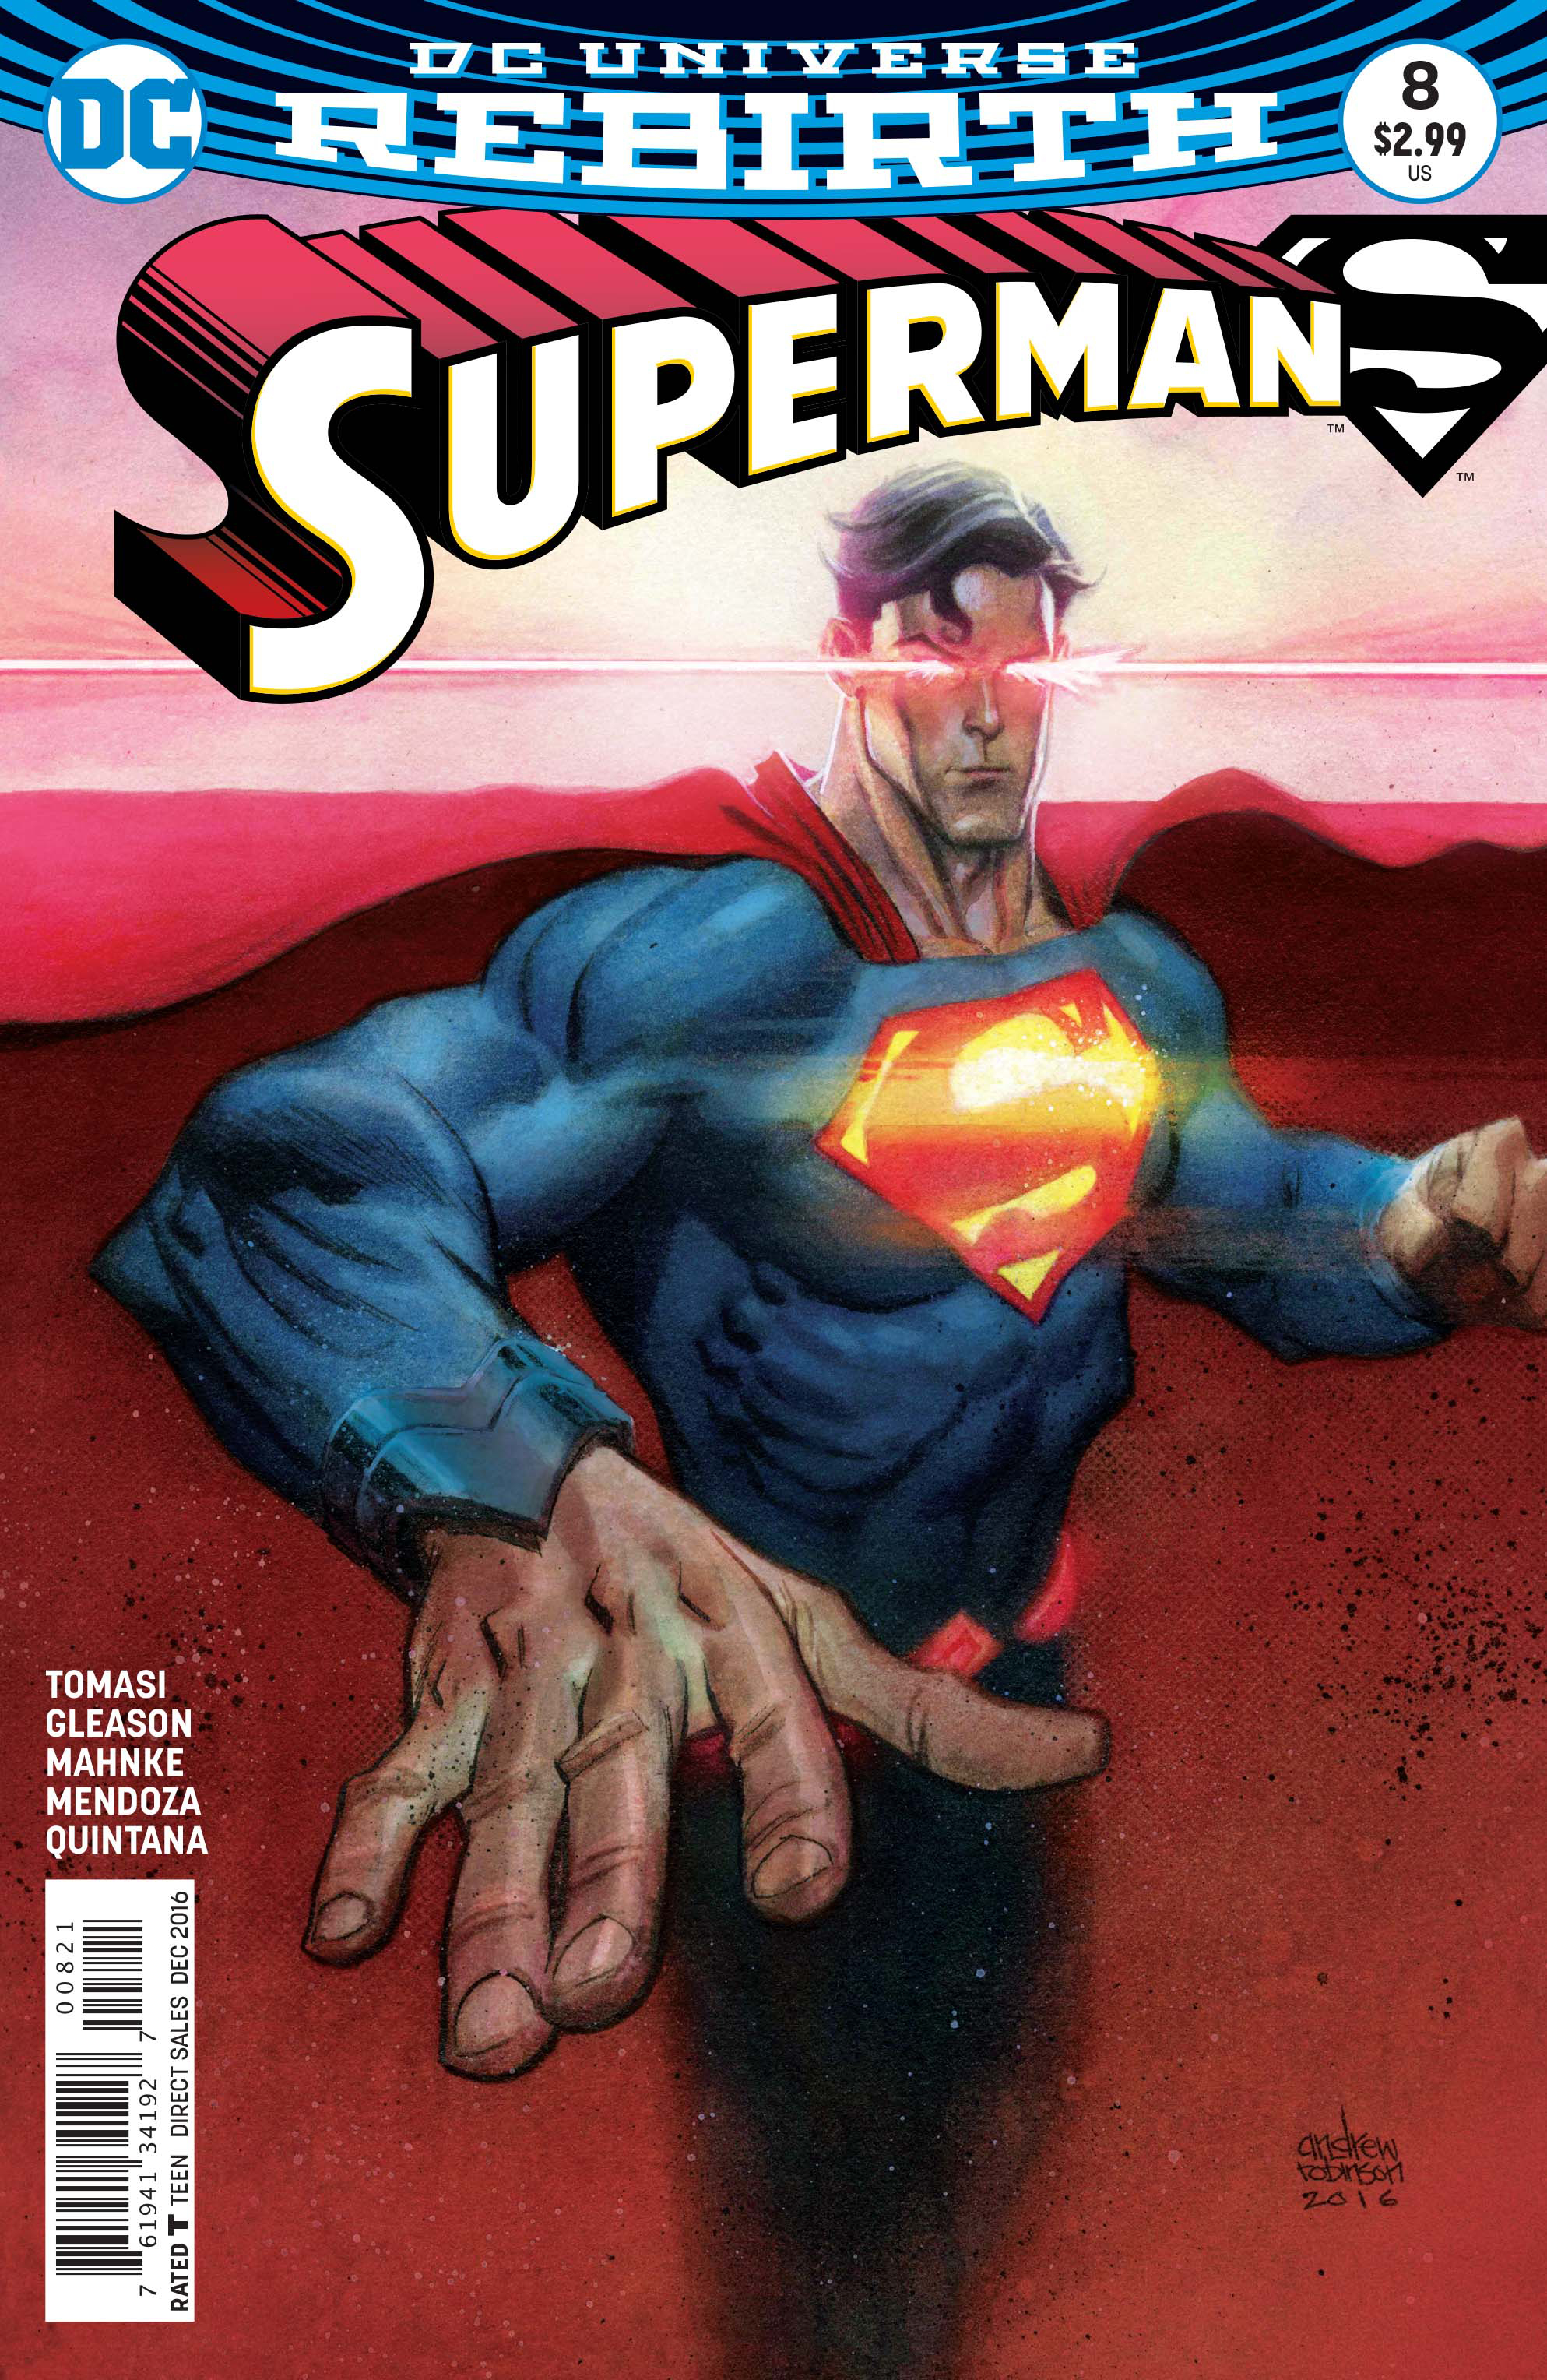 SUPERMAN #8 VAR ED